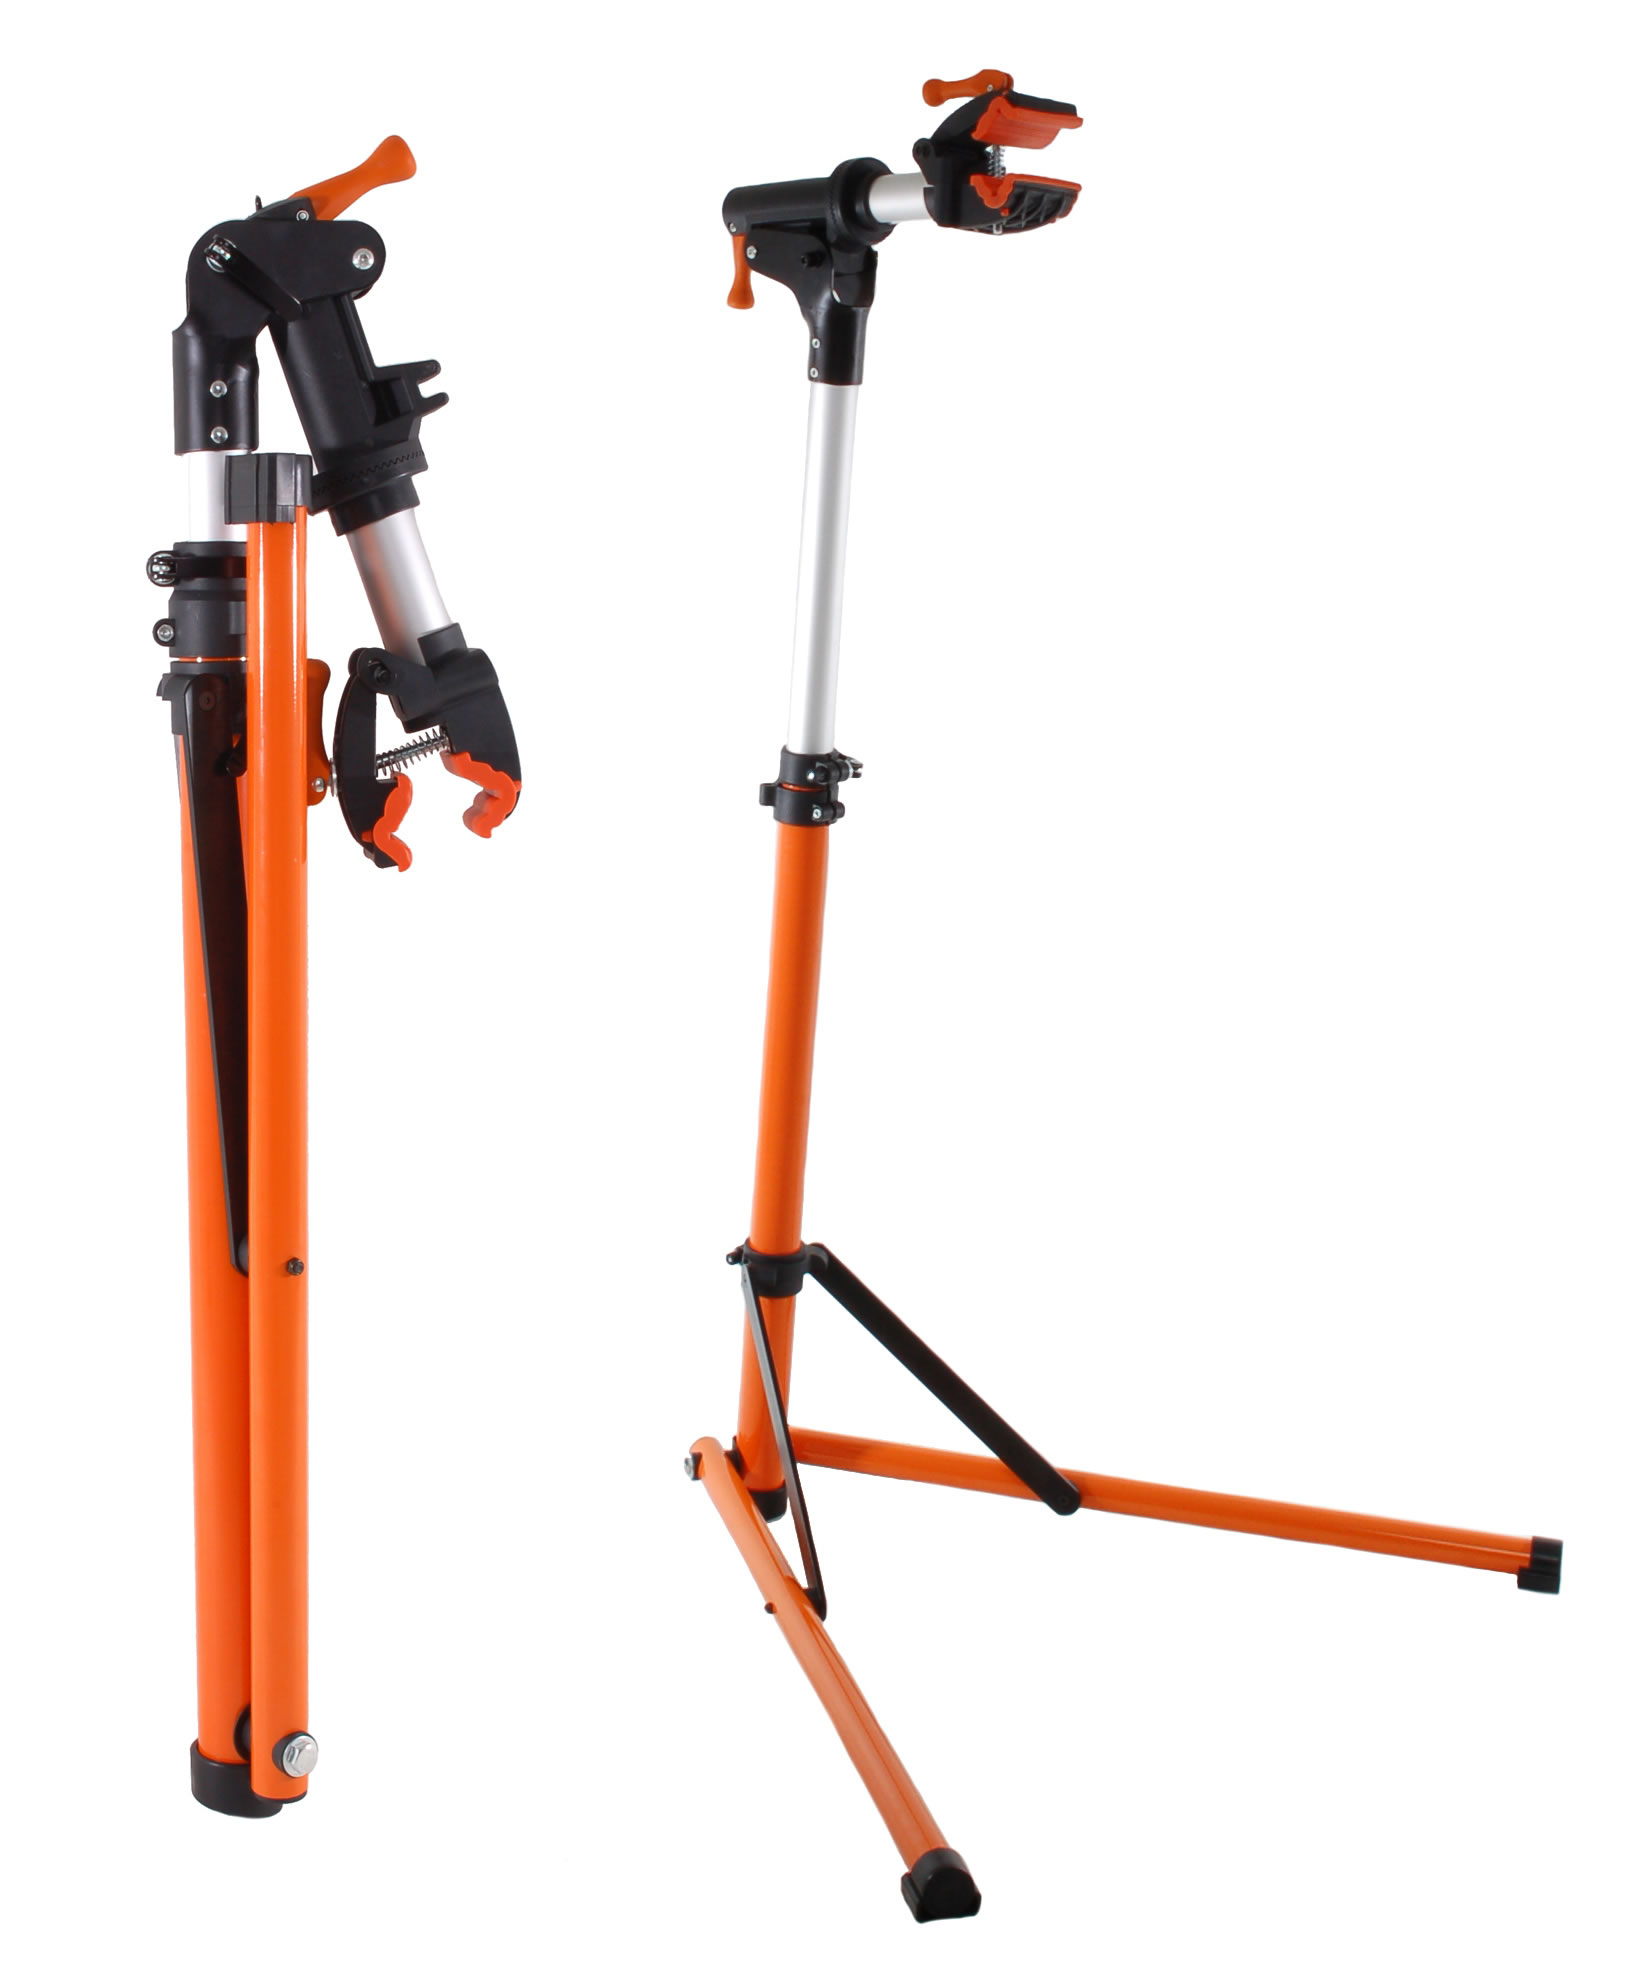 Conquer Aluminum Portable Pro Mechanic Bike Repair Stand Foldable Bicycle Workstand at Sears.com